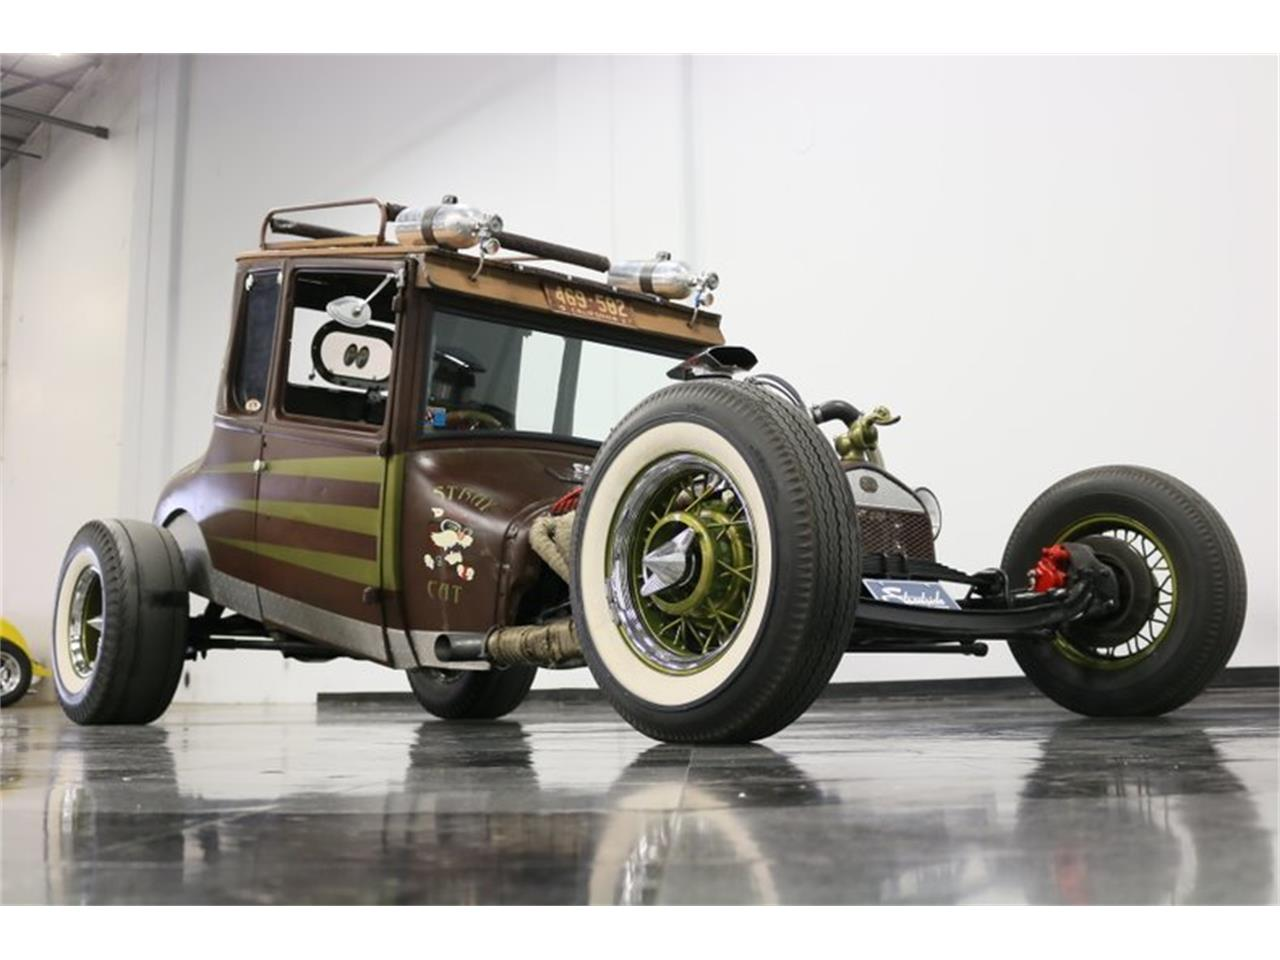 Large Picture of Classic '27 Ford Coupe located in Ft Worth Texas Offered by Streetside Classics - Dallas / Fort Worth - Q4LA